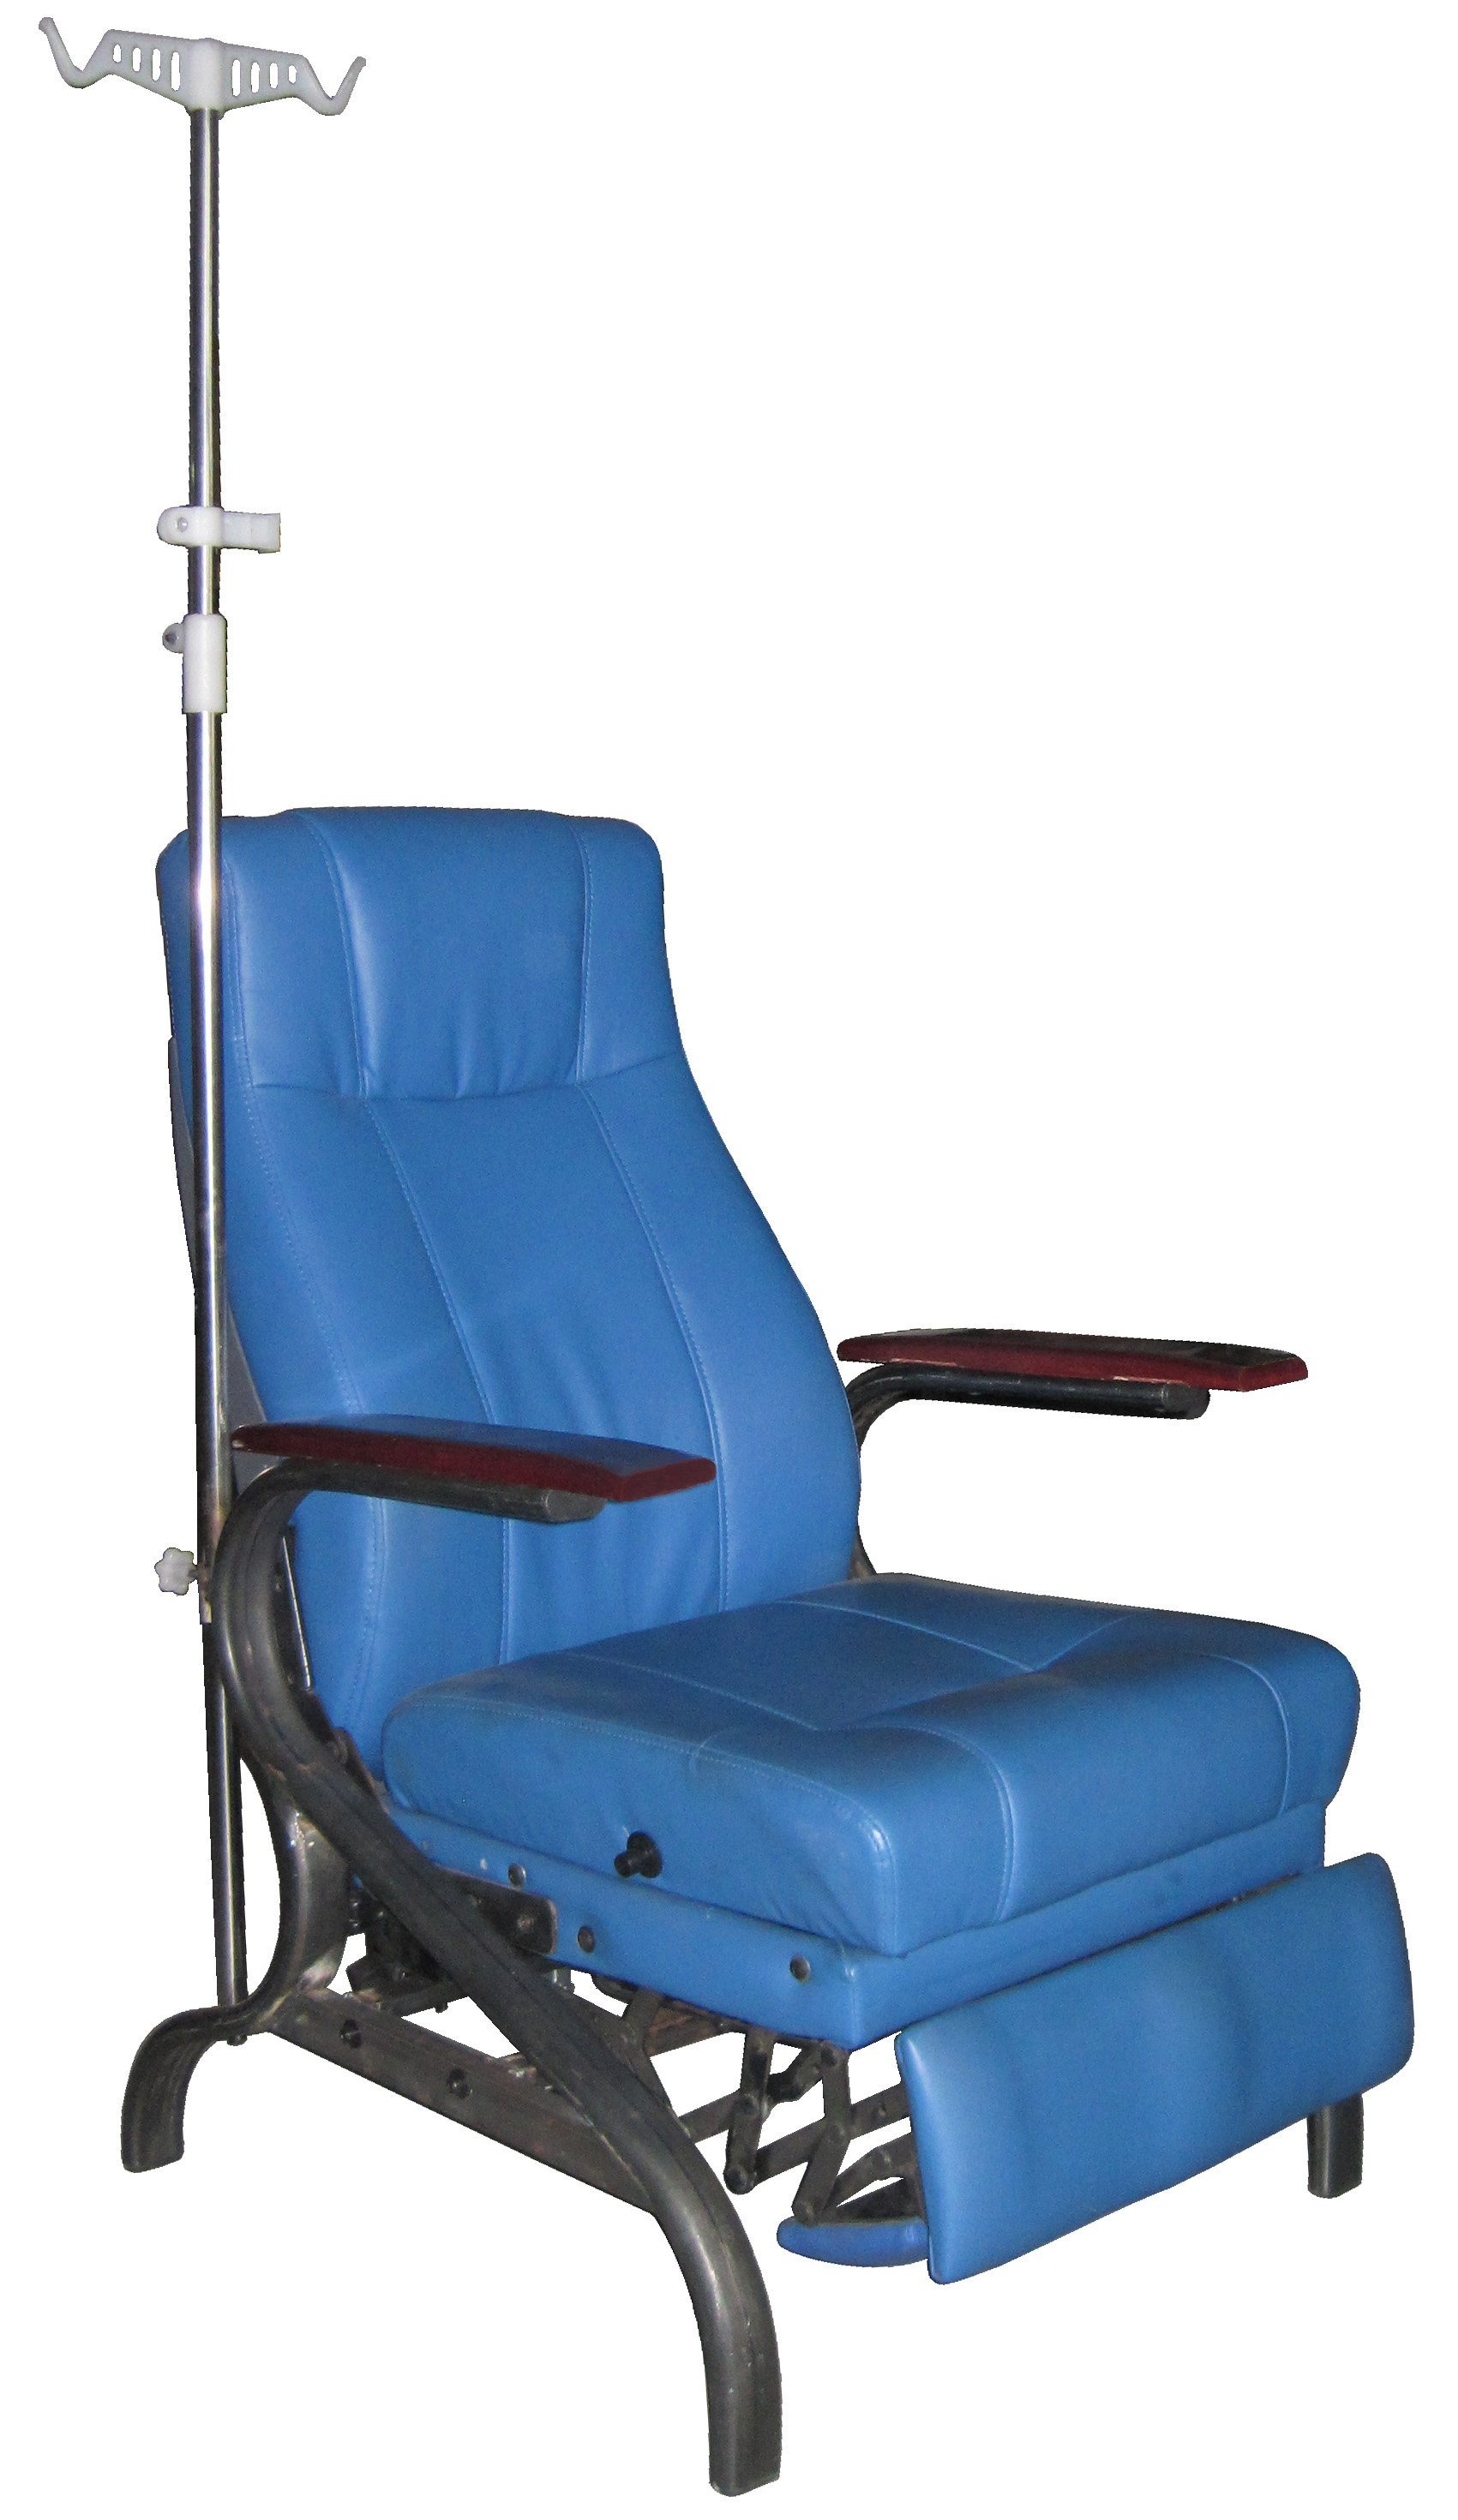 Hospital Electric Blood Donation Chair Dialysis Seating Patient Seat (P03)